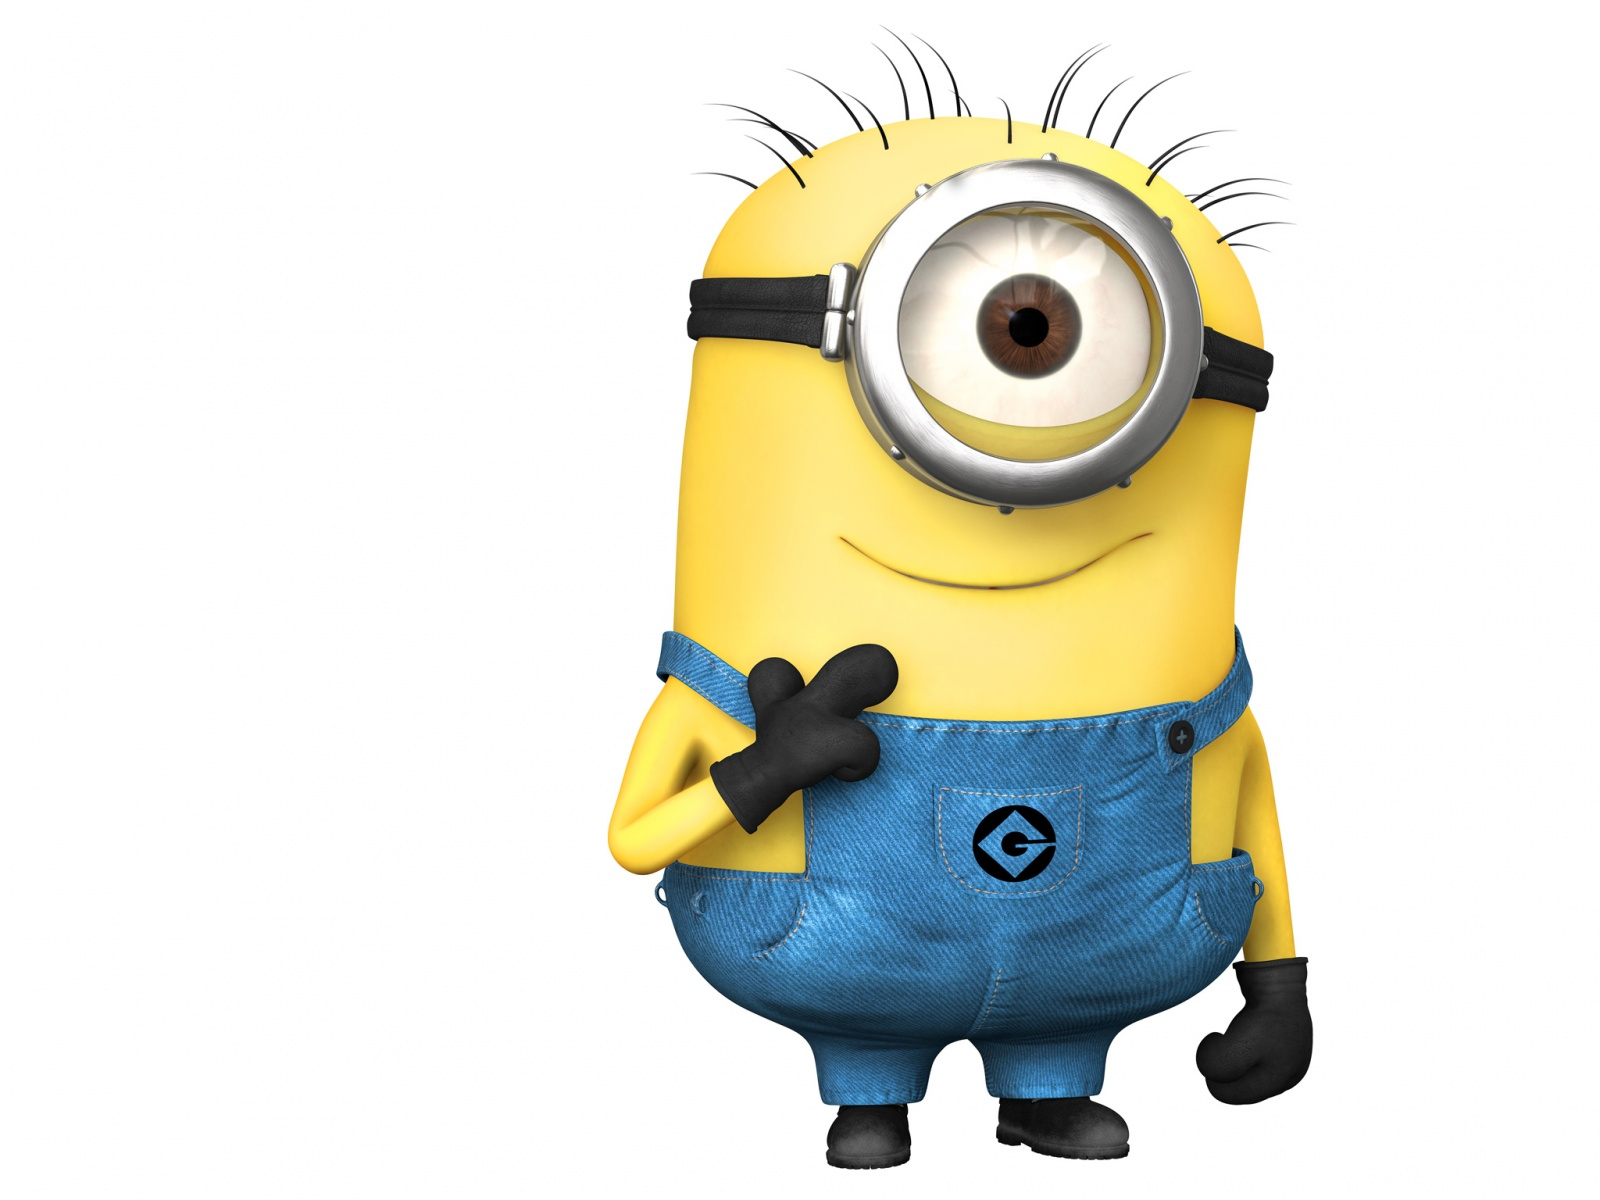 Despicable Me Minions images Minions HD wallpaper and background photos